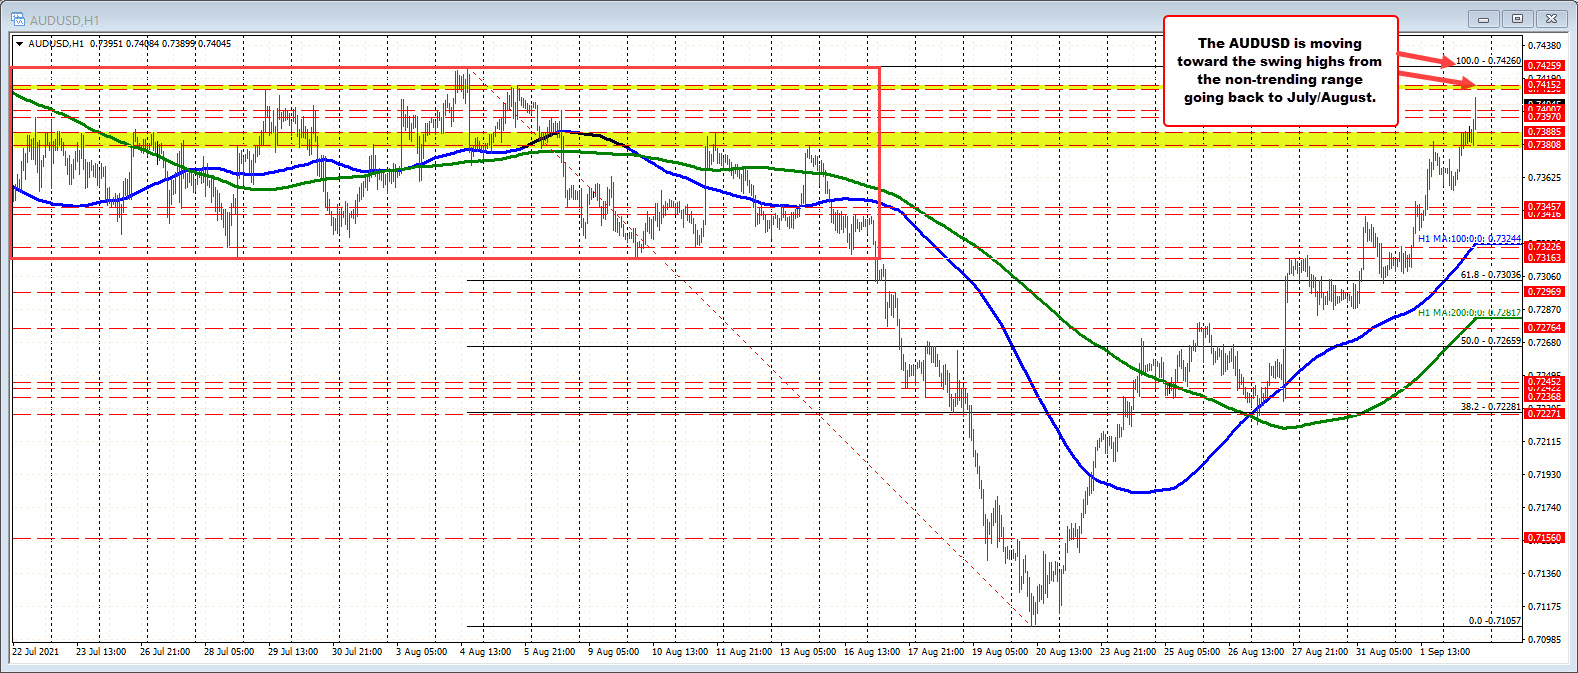 New lows for the greenback vs the EUR, GBP, AUD and NZD